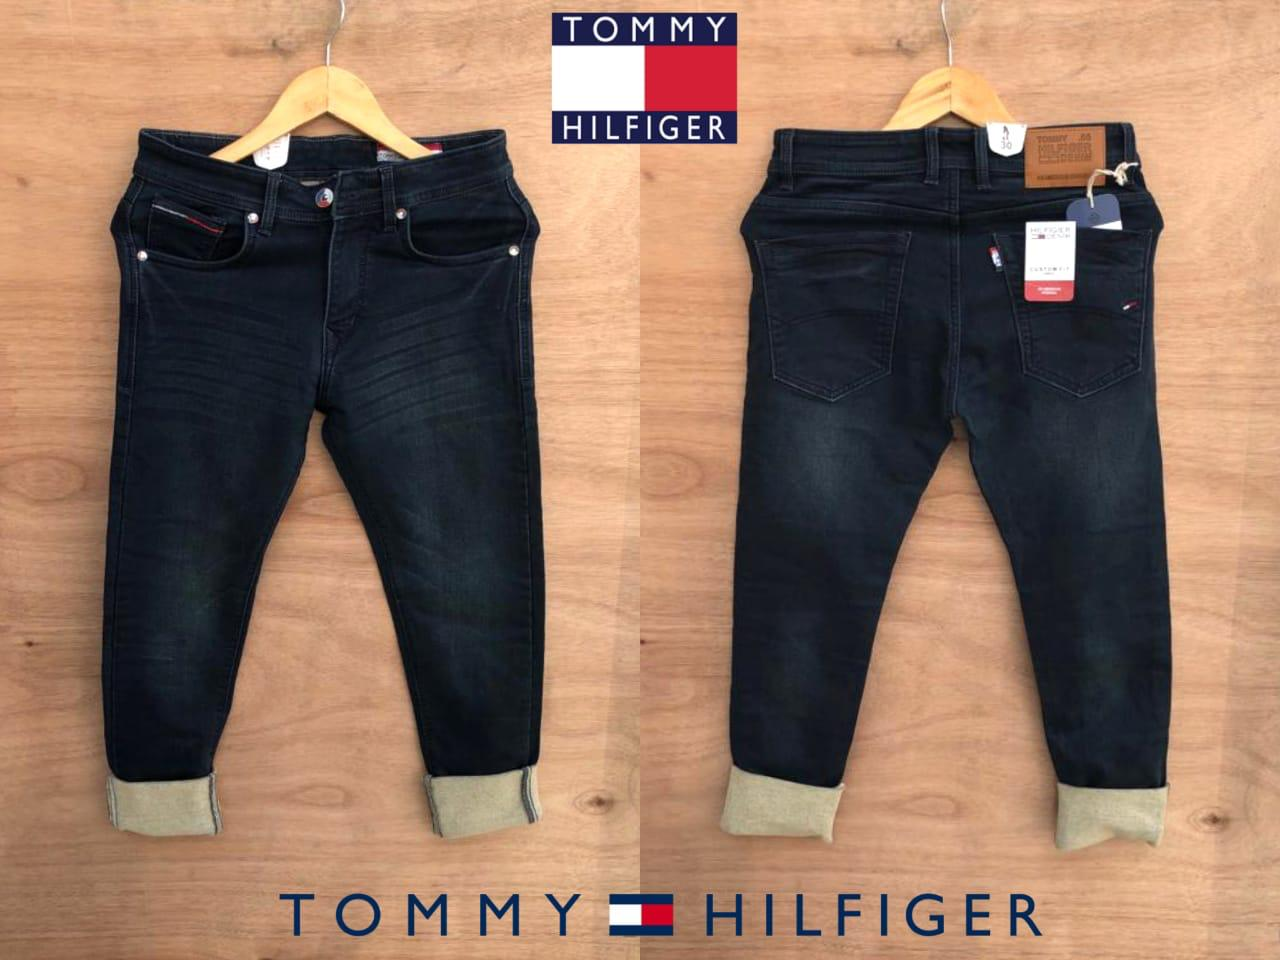 Tommy Hilfiger Denim Jeans For Men